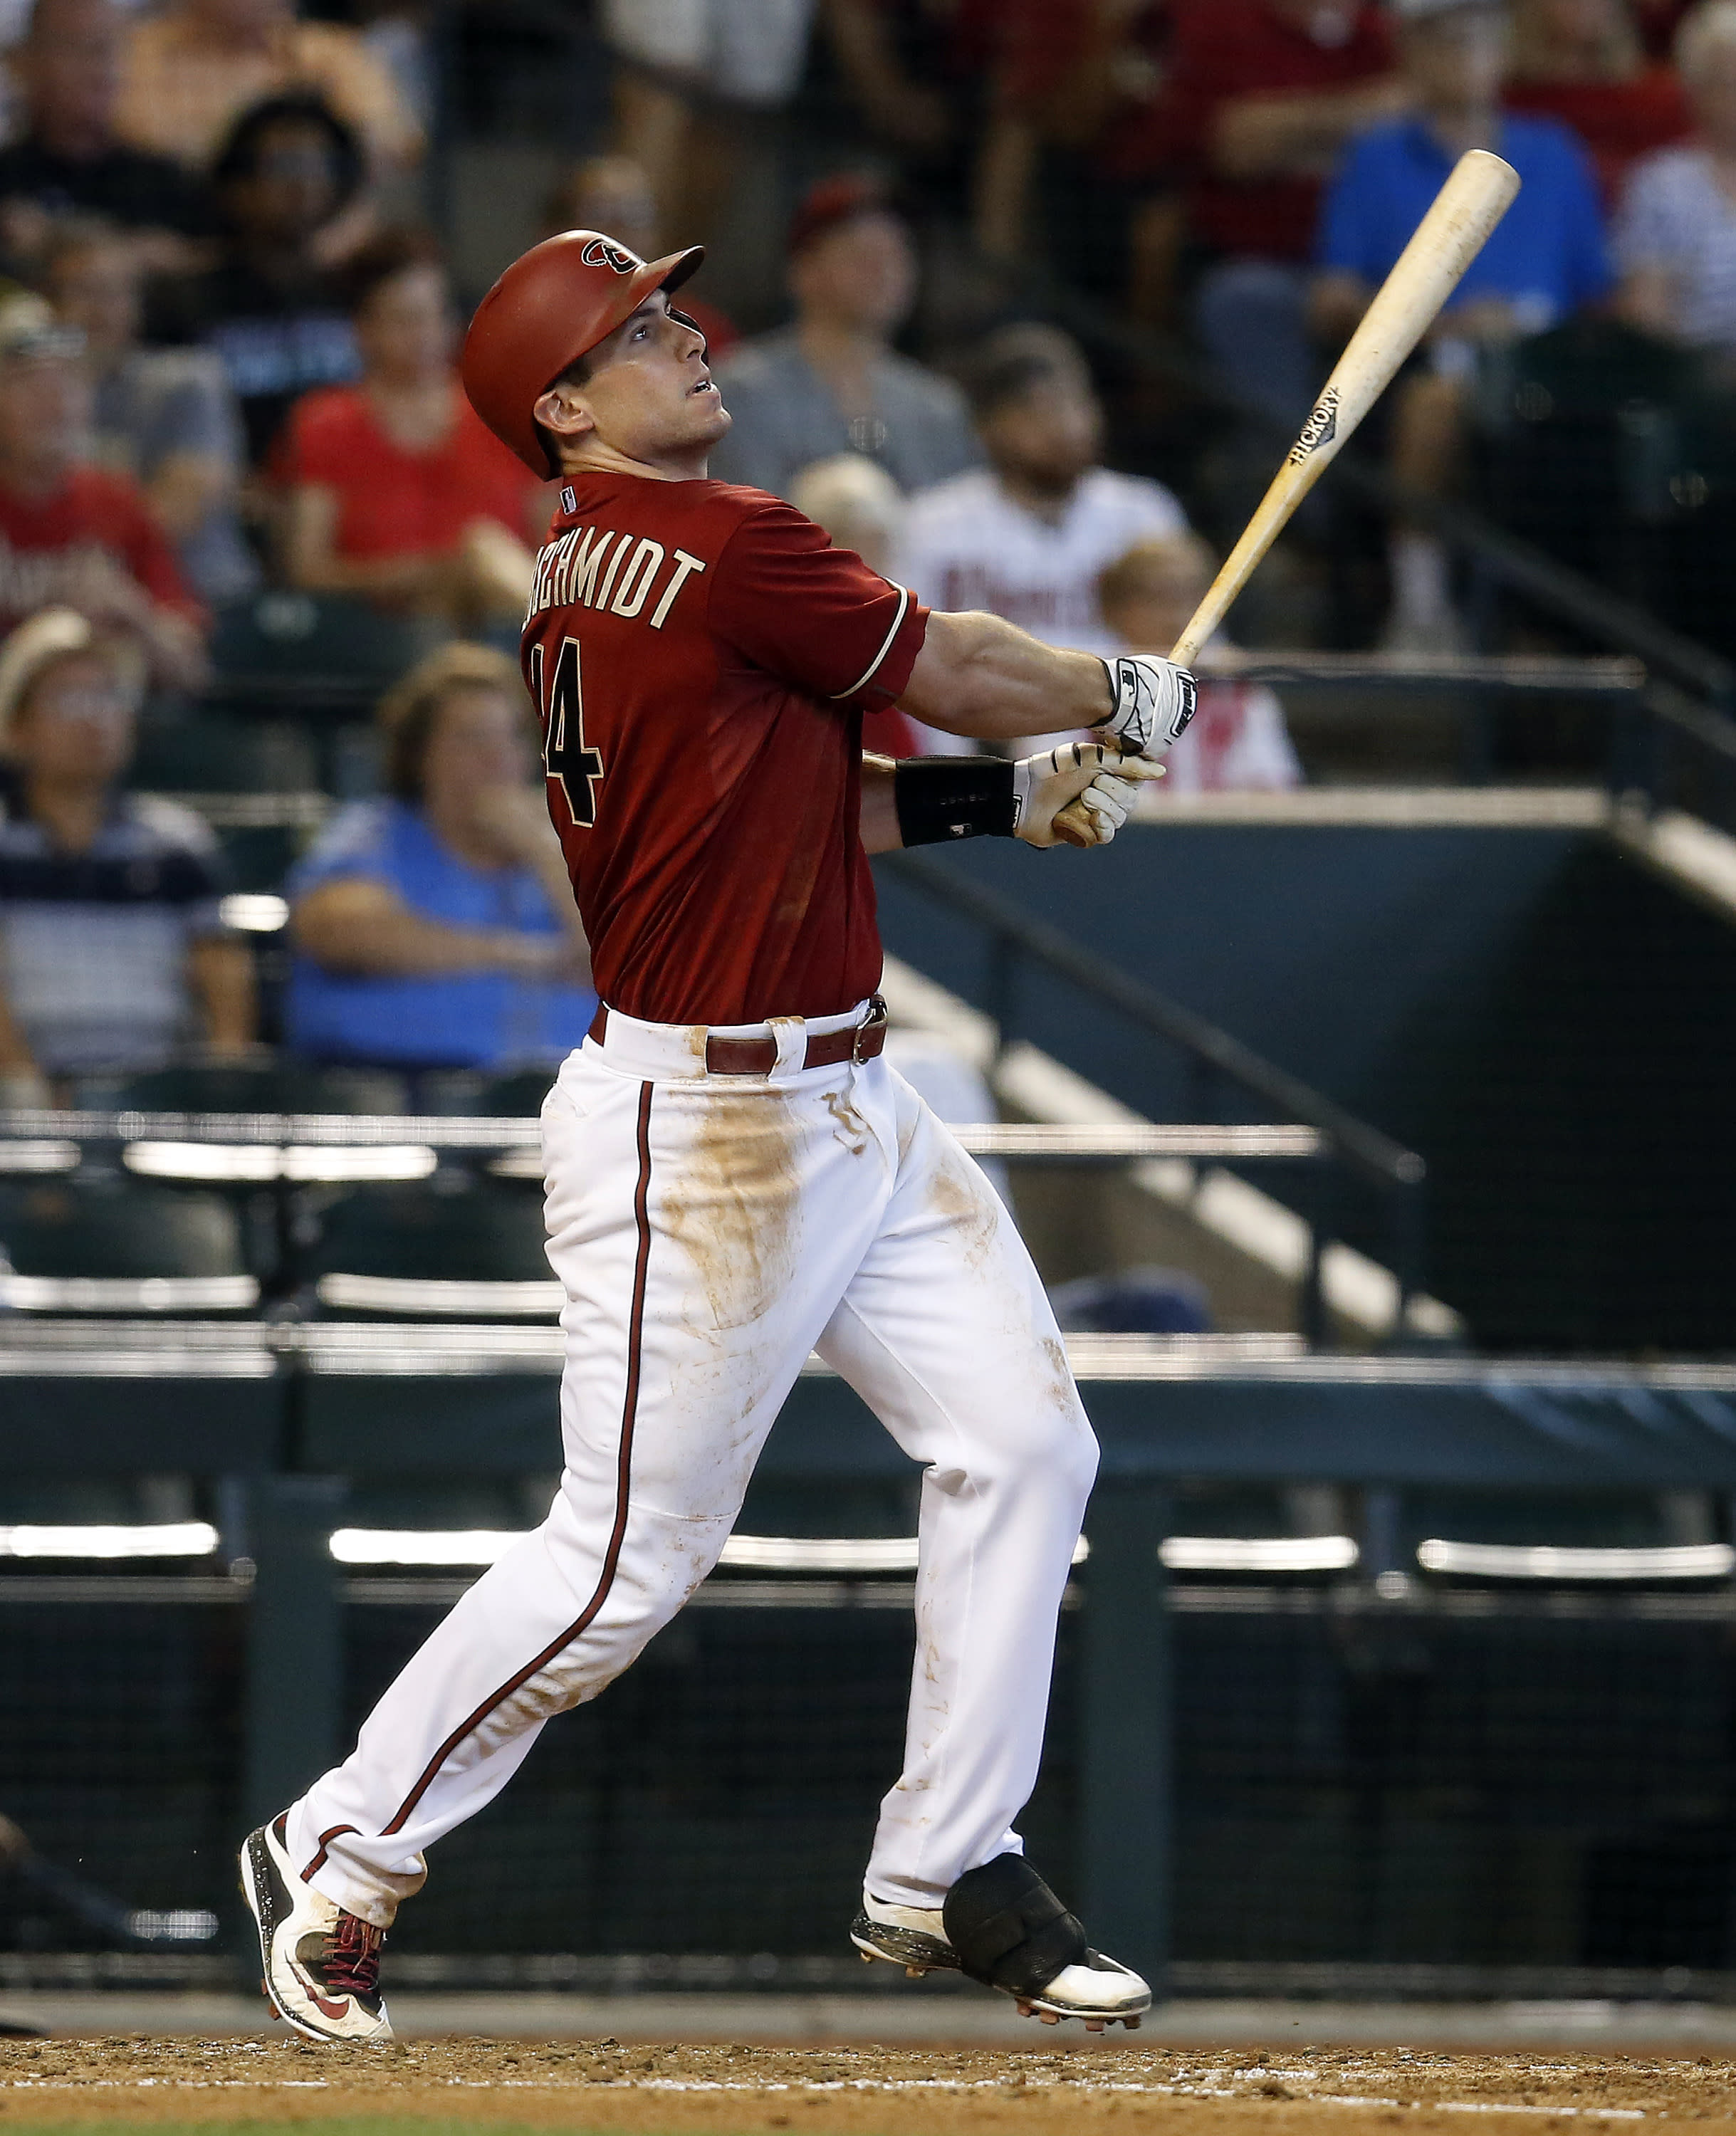 Goldschmidt homers, D-Backs beat Cubs 4-3 to take series